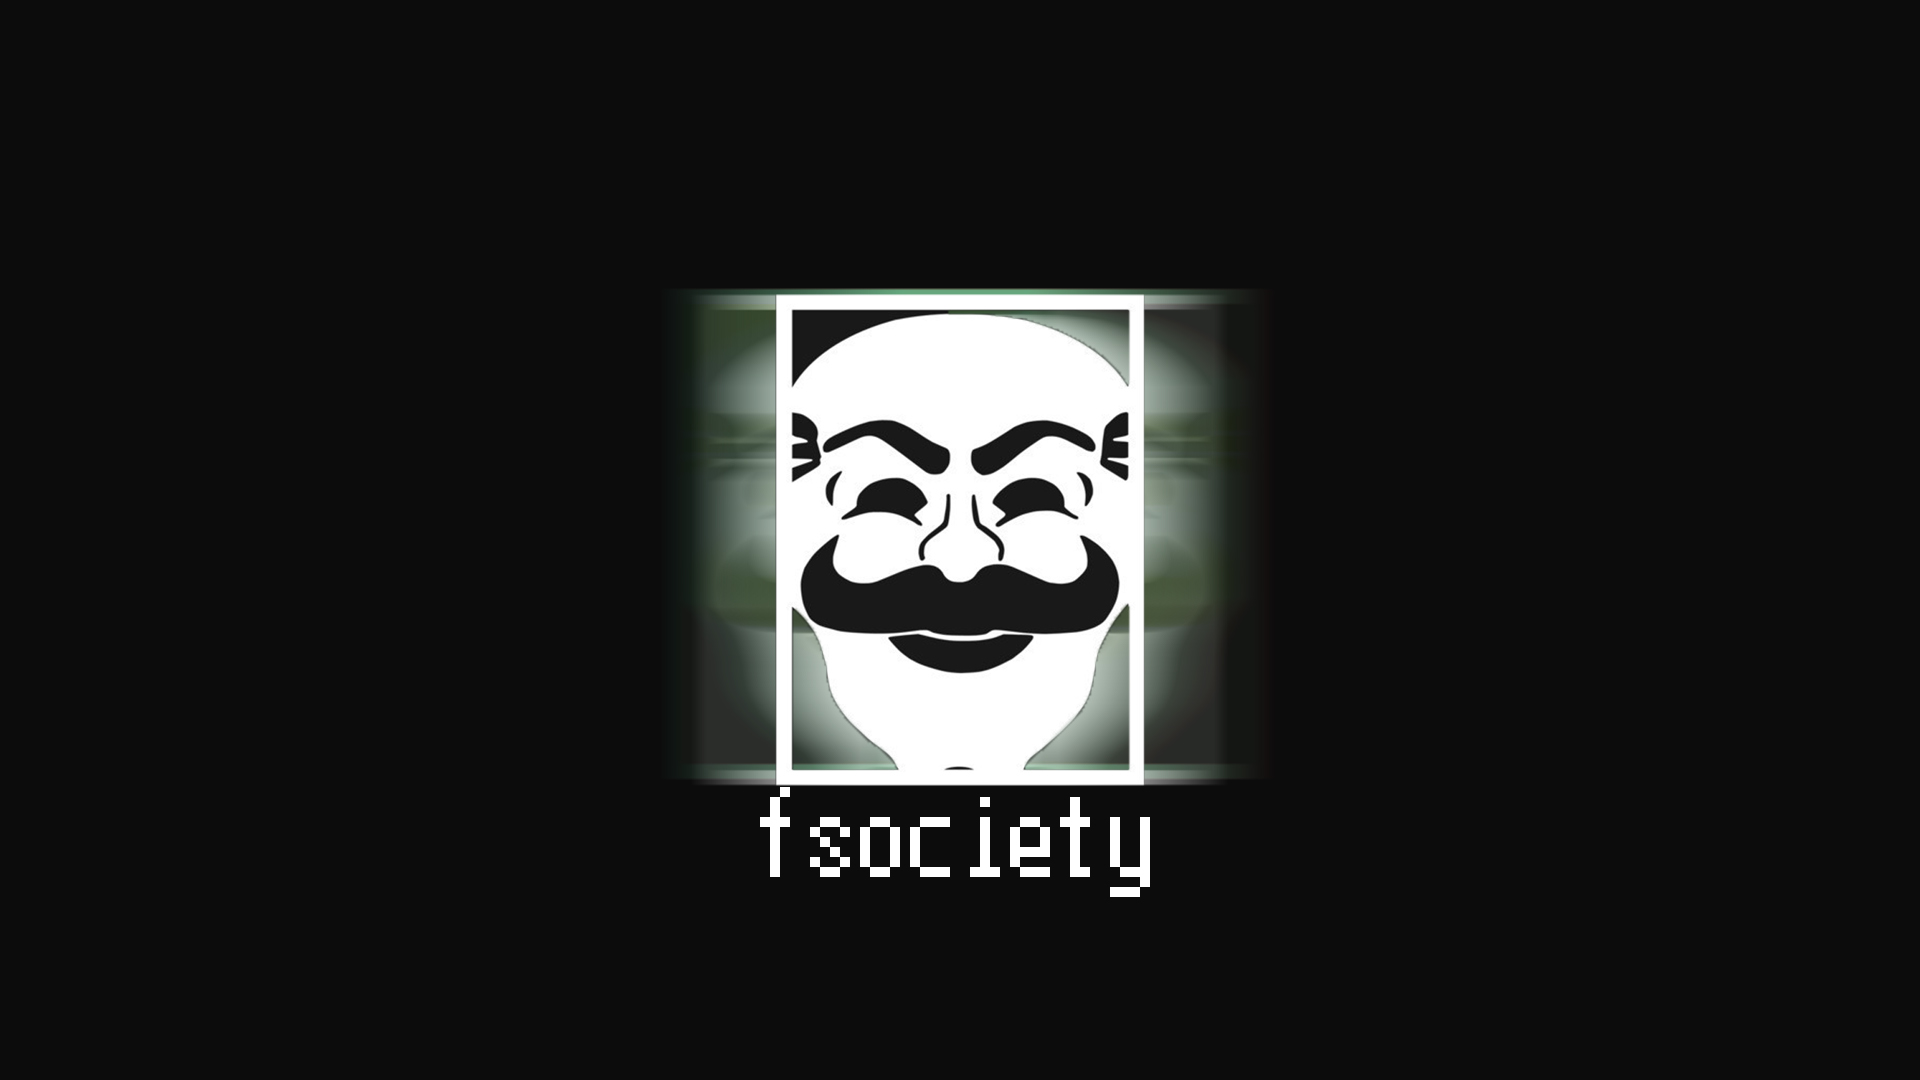 fsociety_2__1920x1080__by_kozmosindigo-d98e4ml